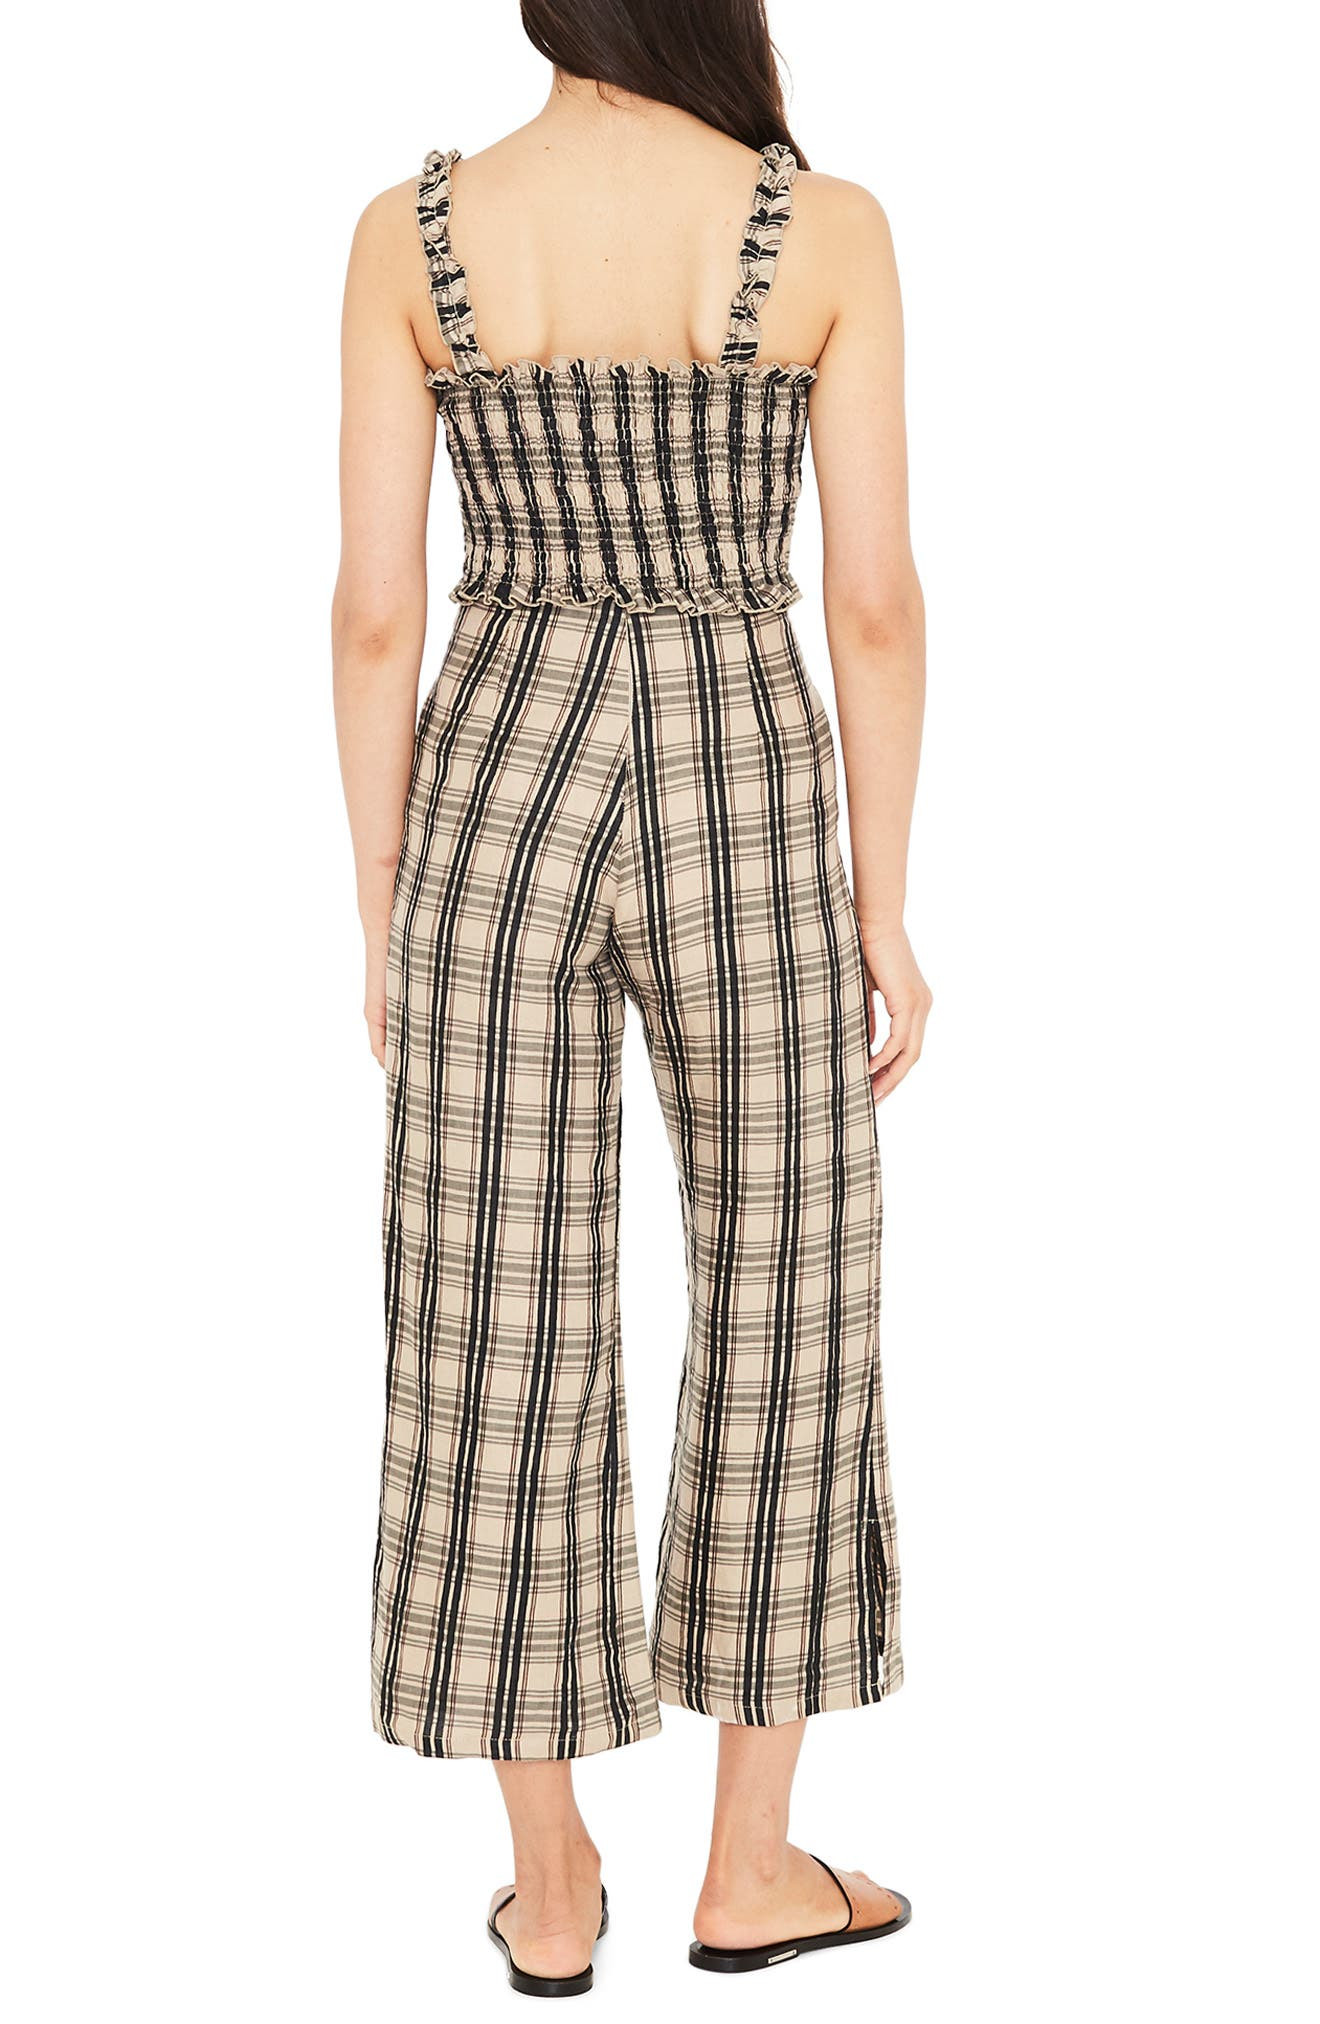 Carmen Plaid Crop Flare Pants,                             Alternate thumbnail 6, color,                             HILLARY PRINT